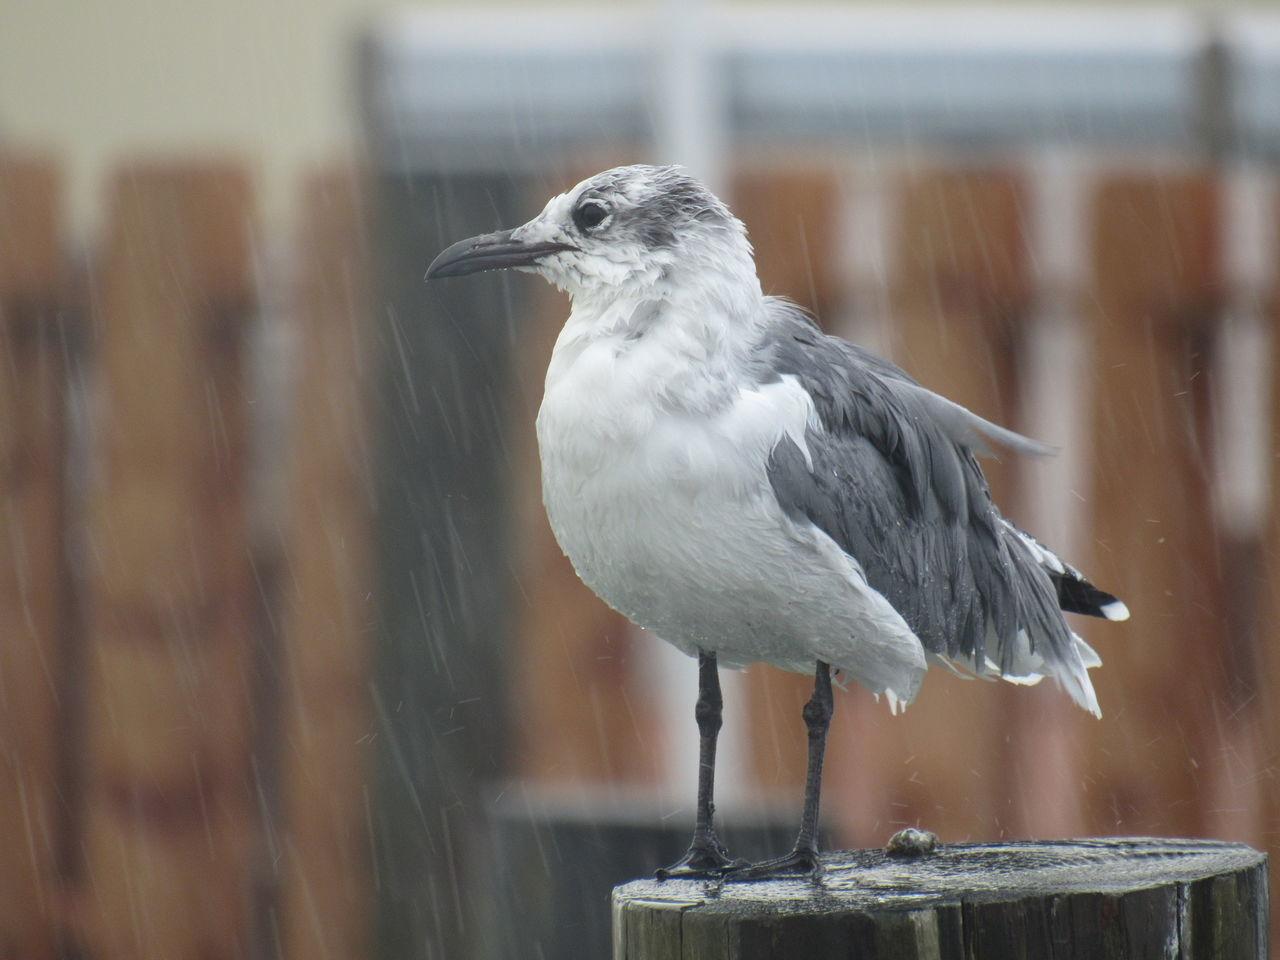 Wet Seagull Animal Themes Animals In The Wild Beak Beauty In Nature Bird Close-up Day Focus On Foreground Nature No People One Animal Perching Raining Day Wet Wildlife Zoology Premium Collection